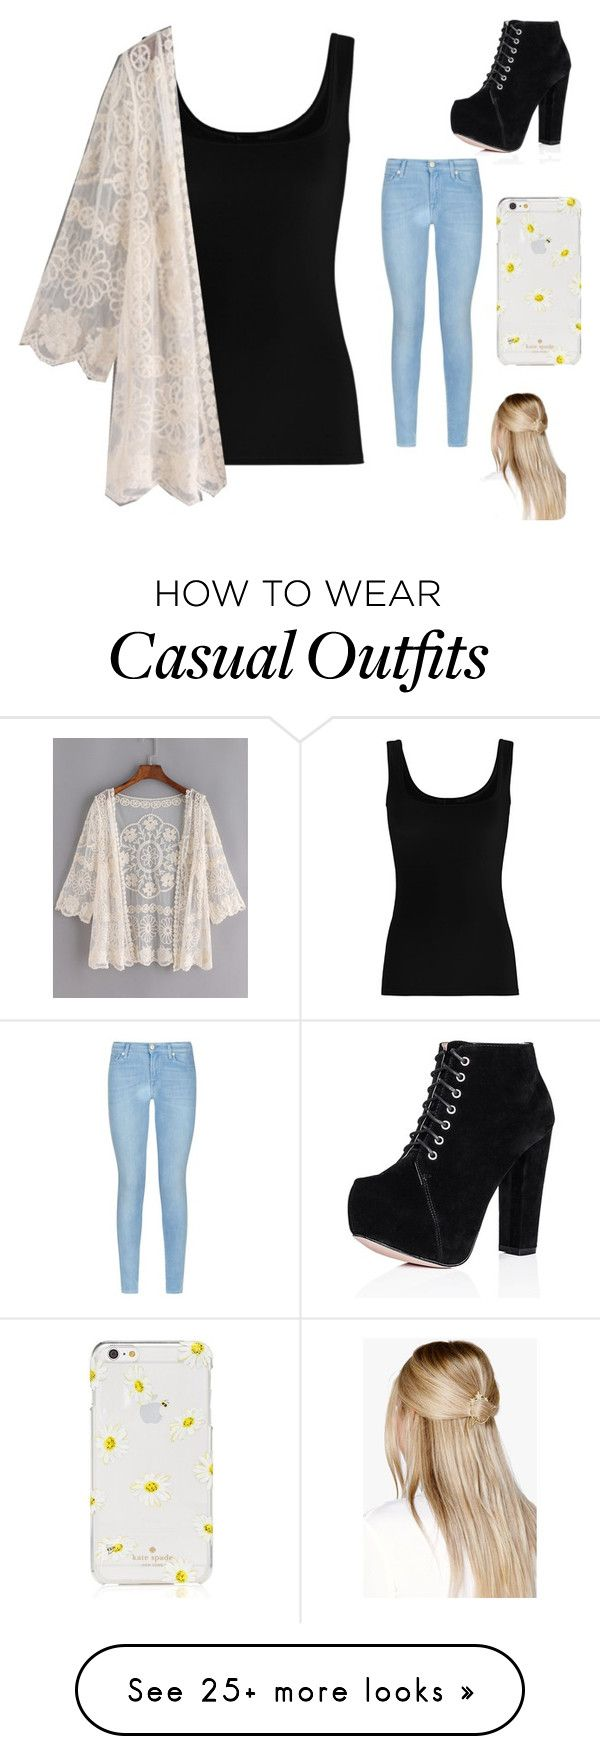 """Casual date"" by elafashion114 on Polyvore featuring Twenty, 7 For All Mankind, Kate Spade and Boohoo"